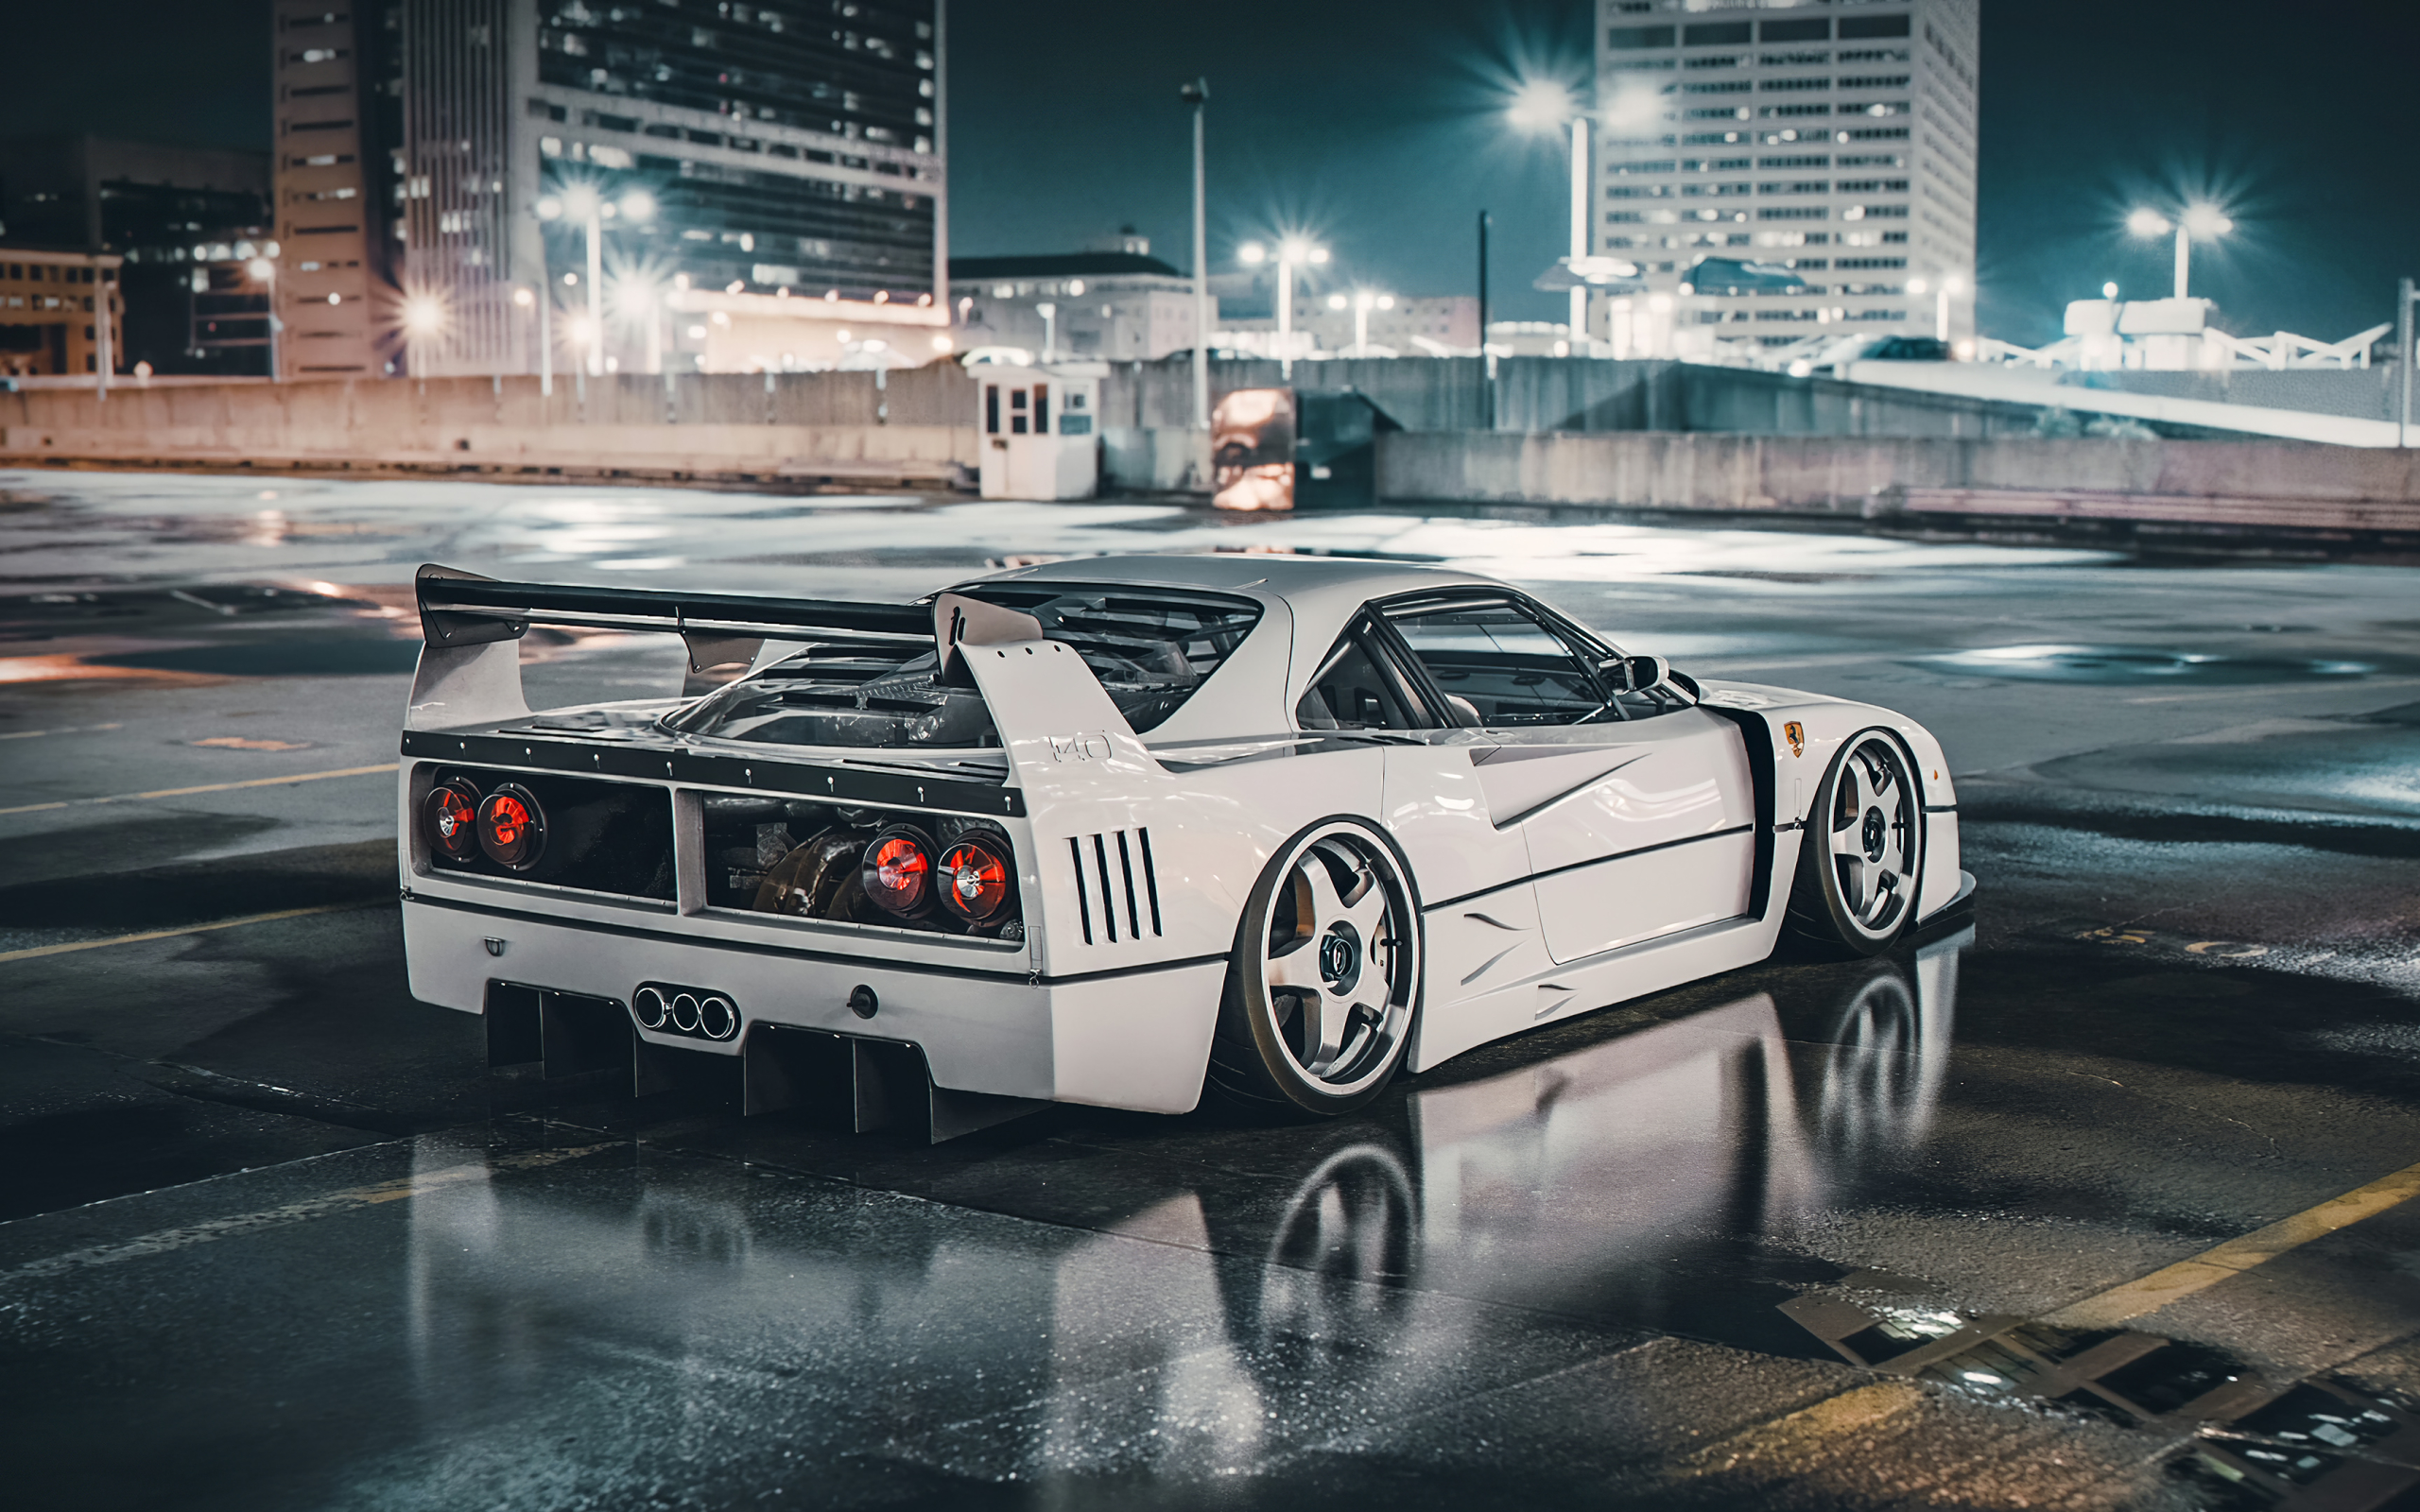 Wallpaper Of Ferrari F40 Lm Car White City Supercar Background